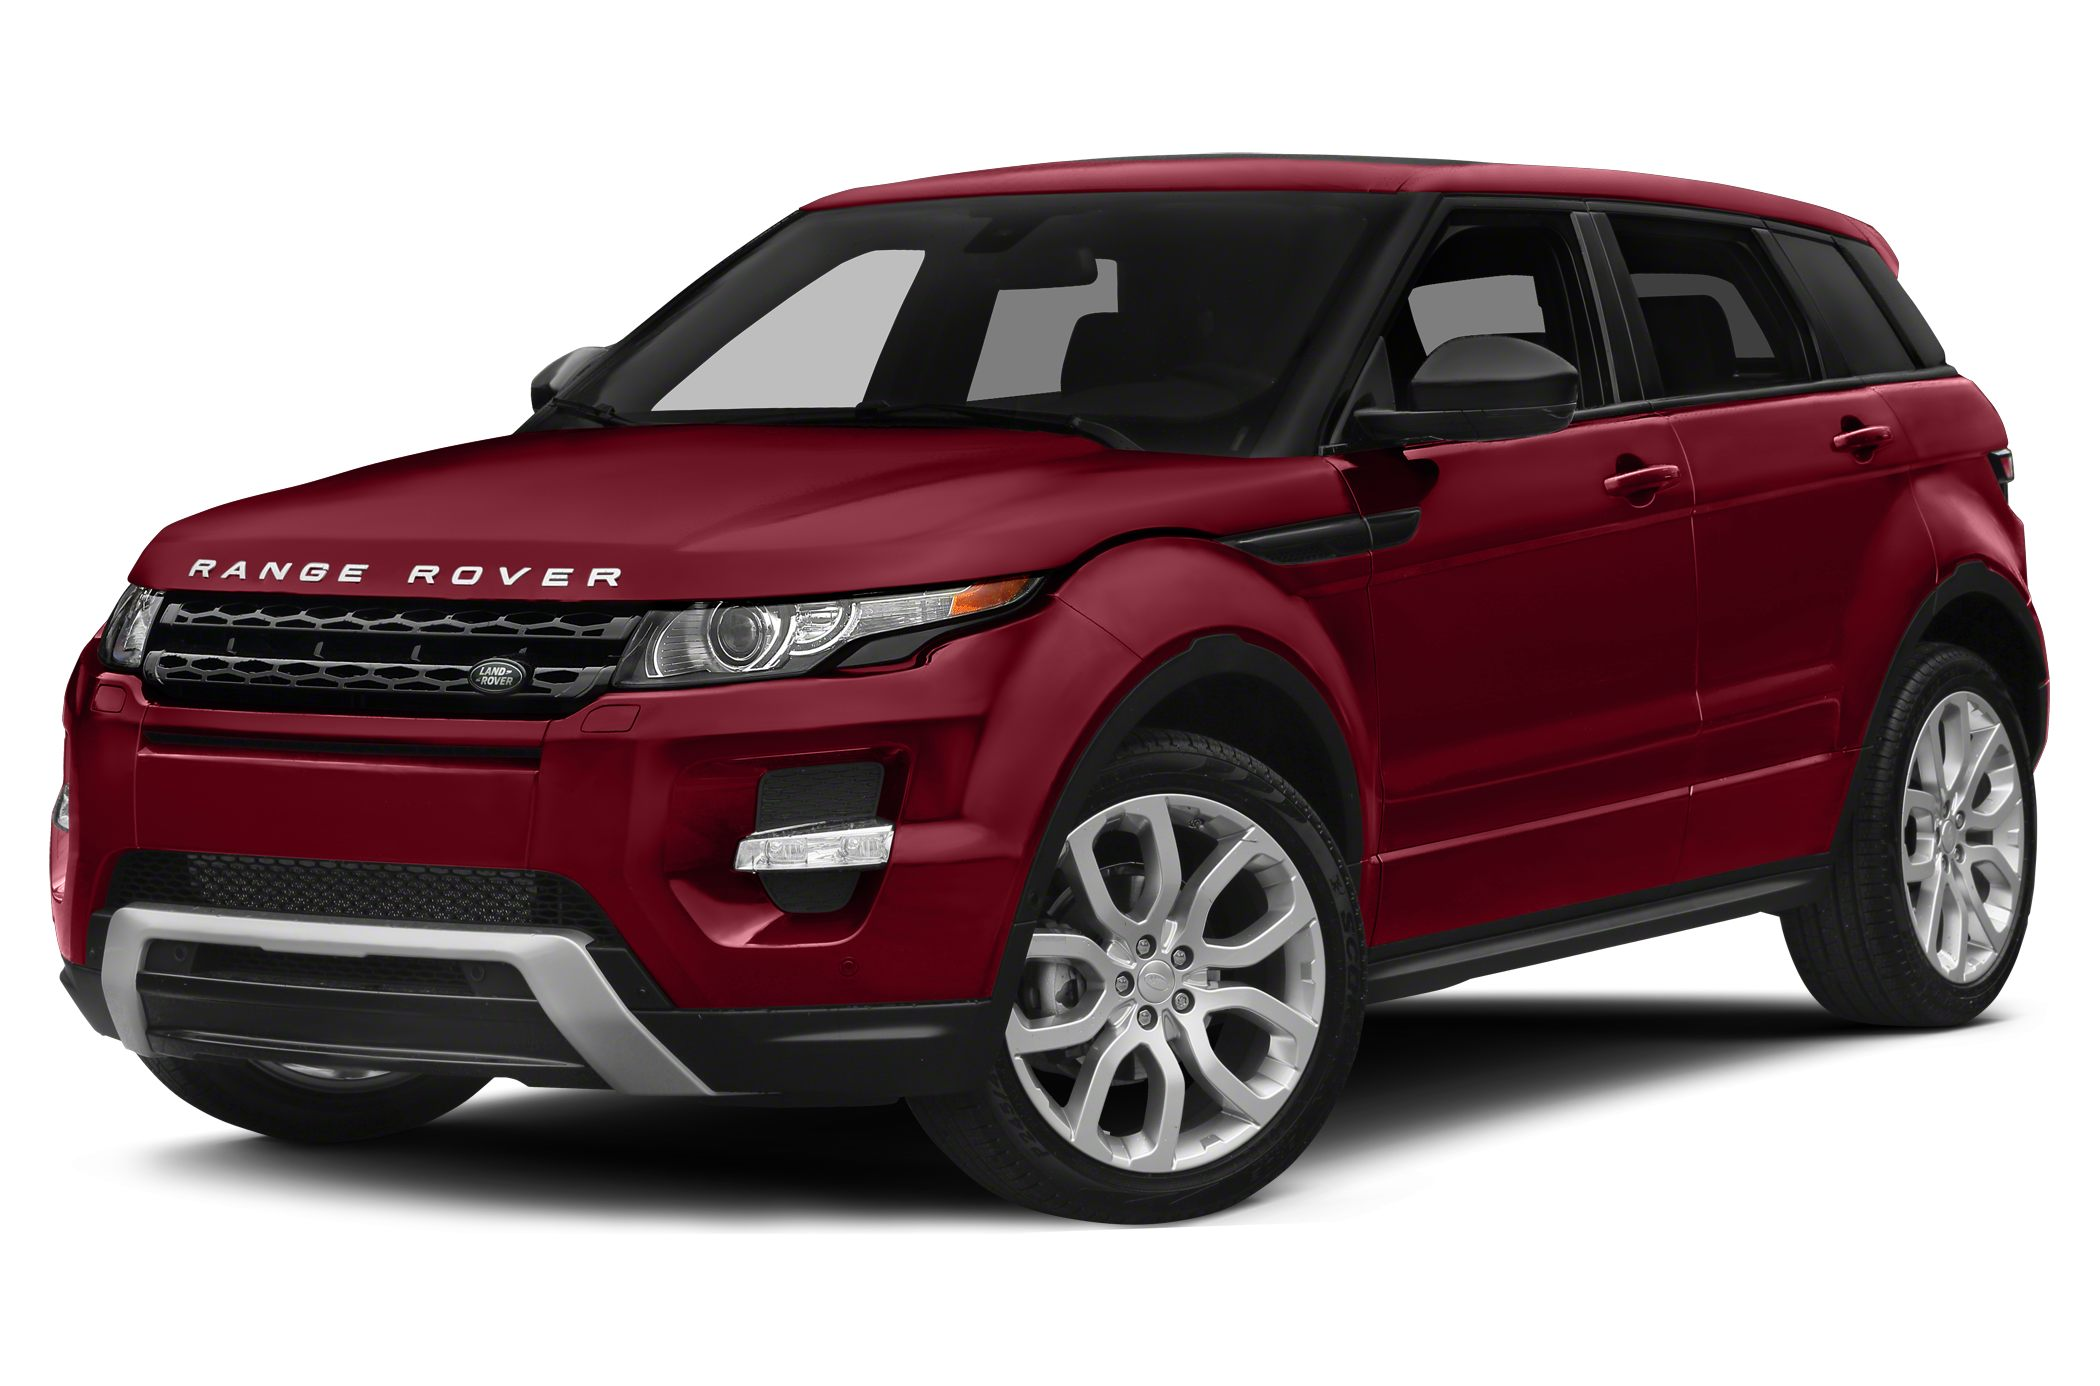 2015 Land Rover Range Rover Evoque Pure New Price Black 2015 Land Rover Range Rover Evoque Pure 4